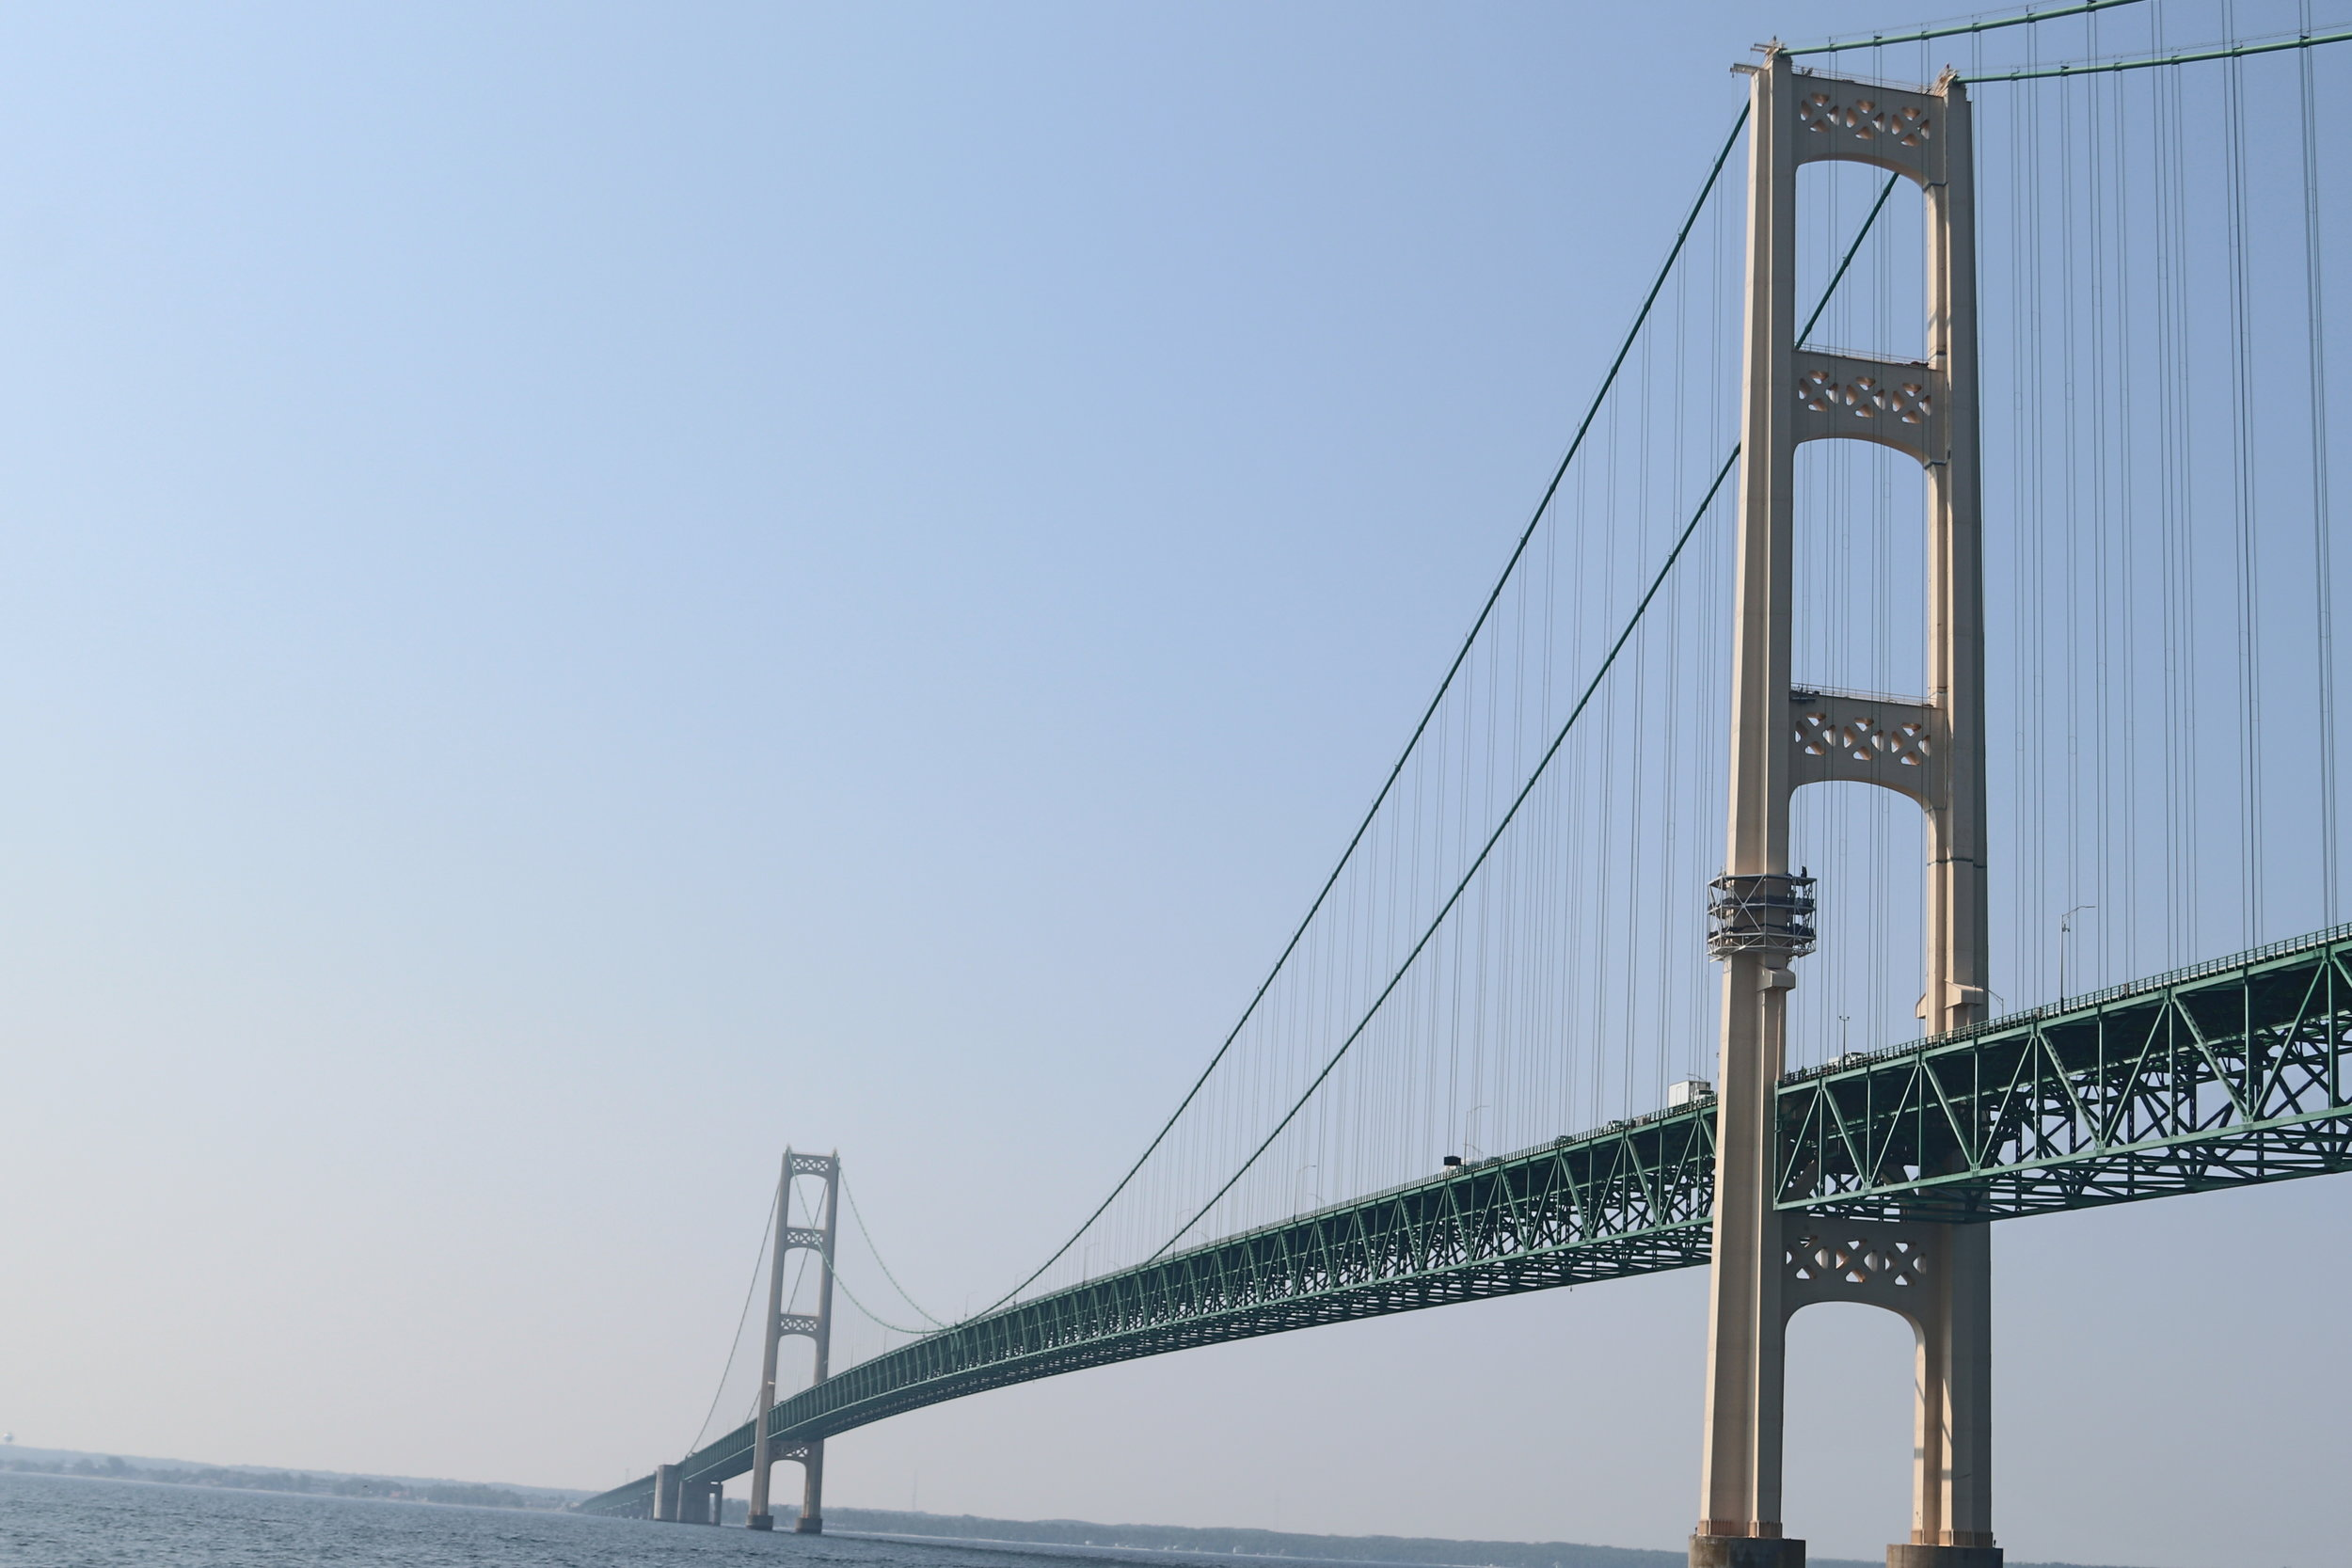 This is a really beautiful bridge